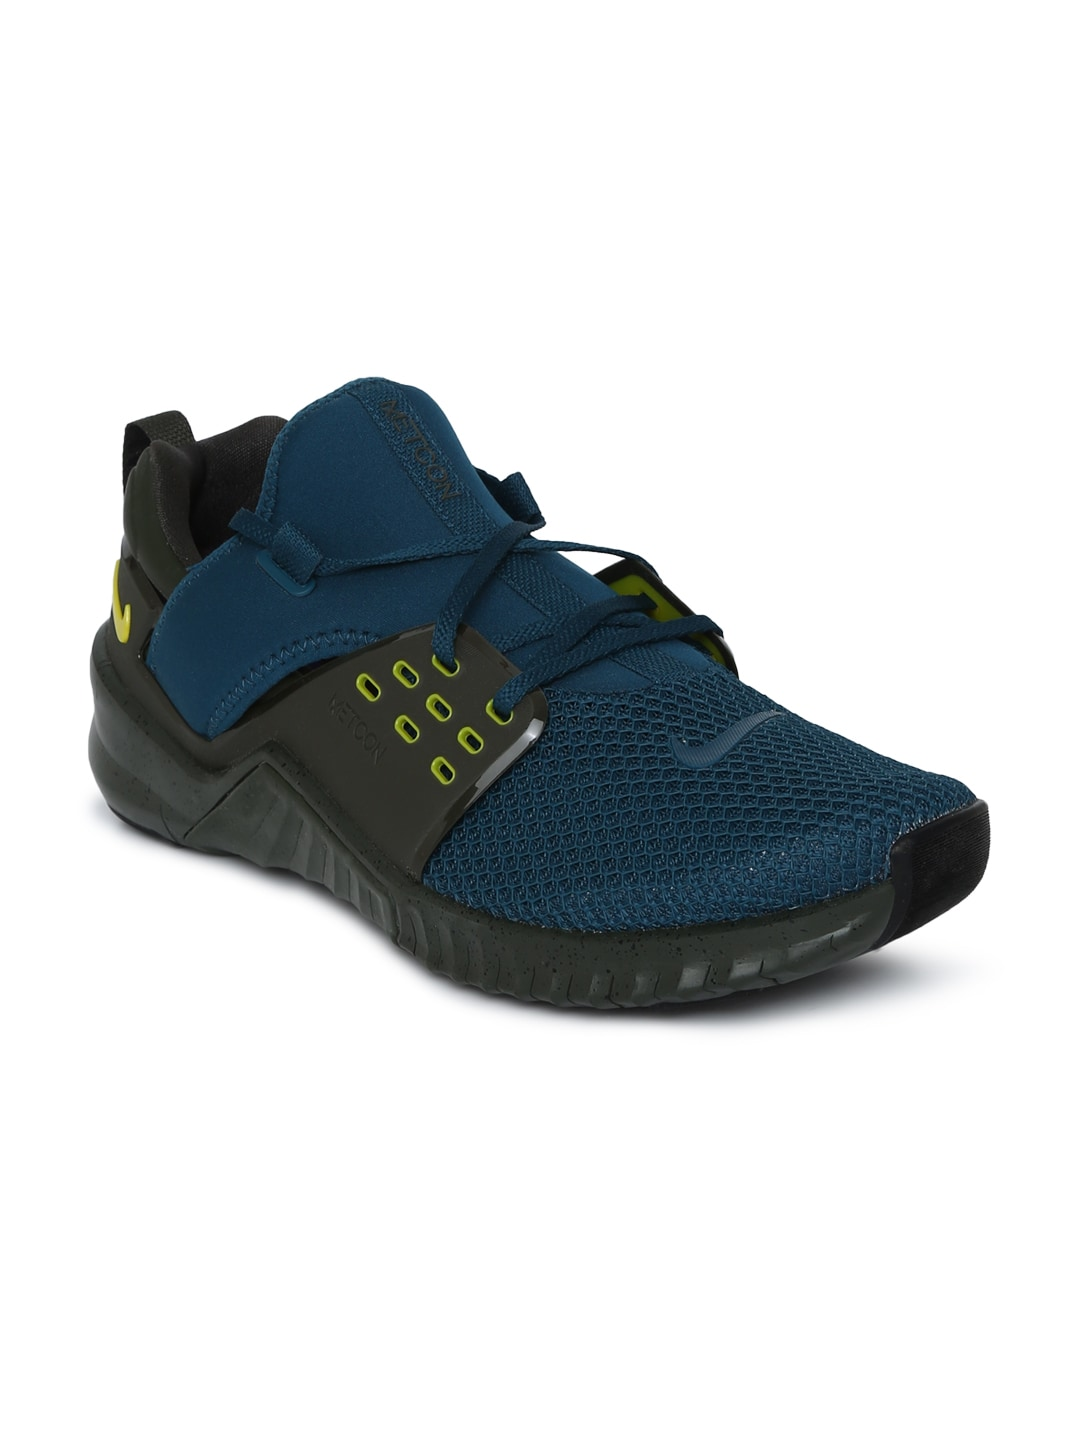 ccd0047701b3 Nike - Shop for Nike Apparels Online in India